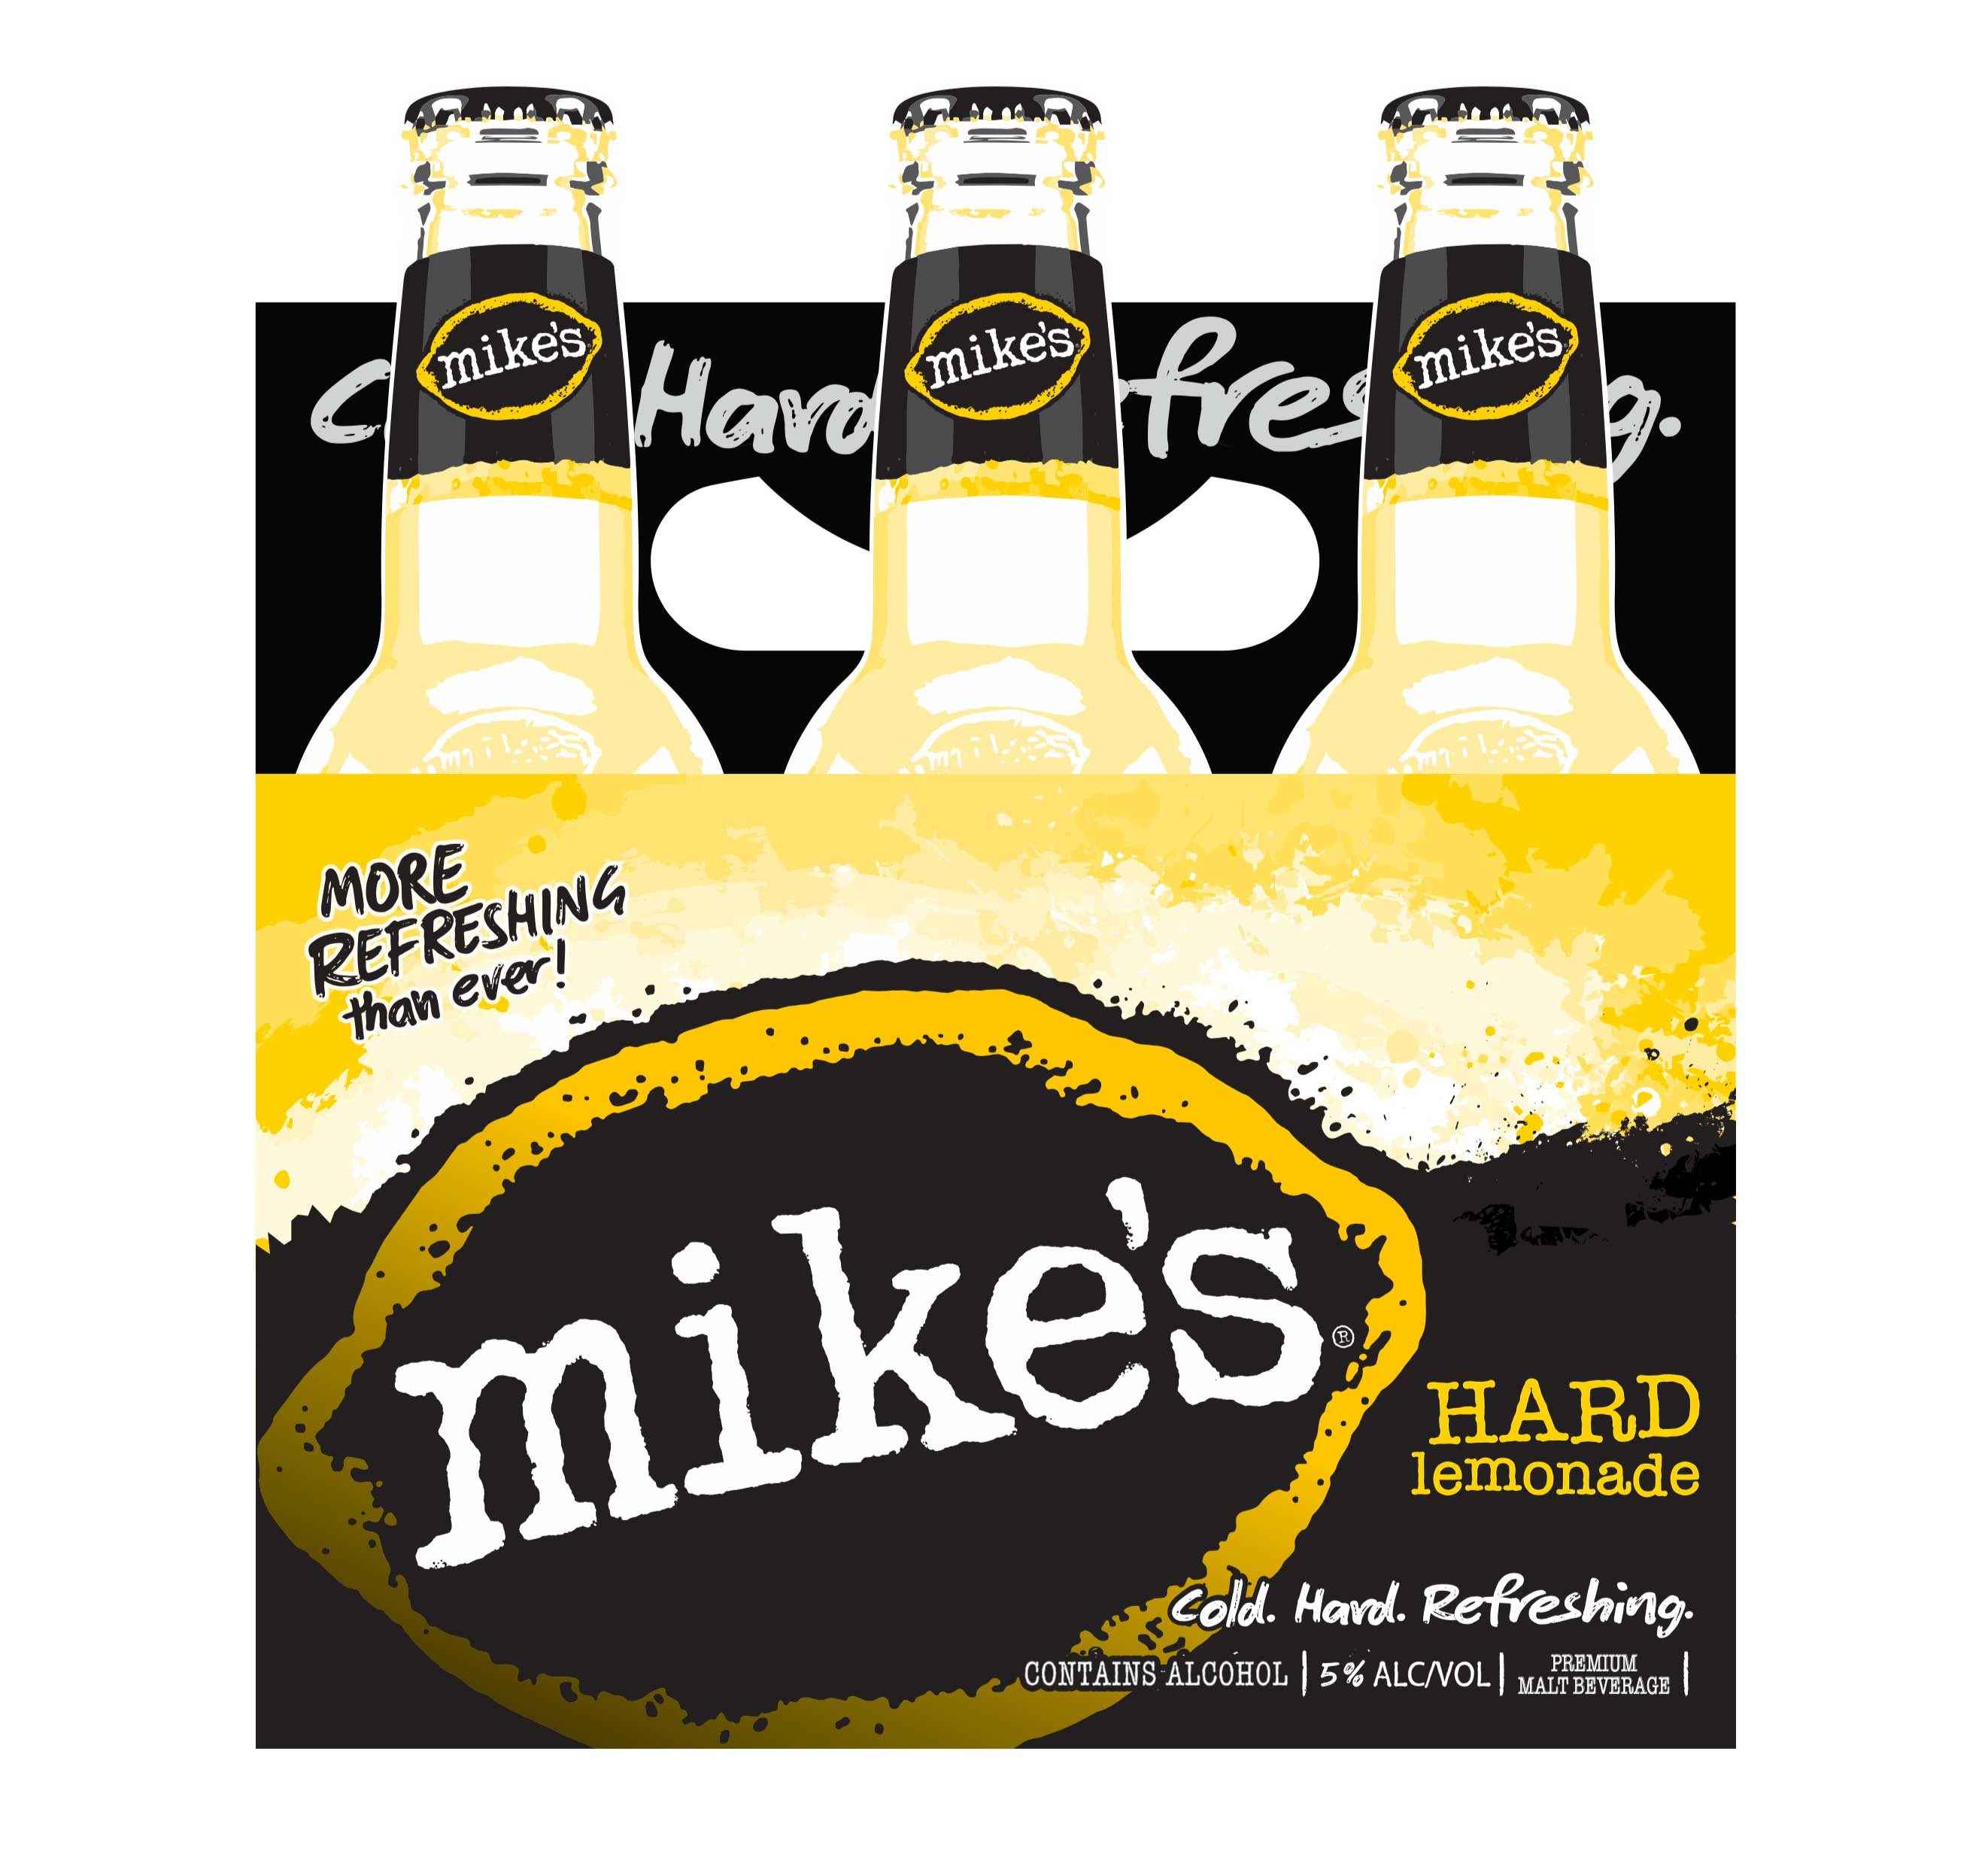 mikes_hard_lemonade_carton